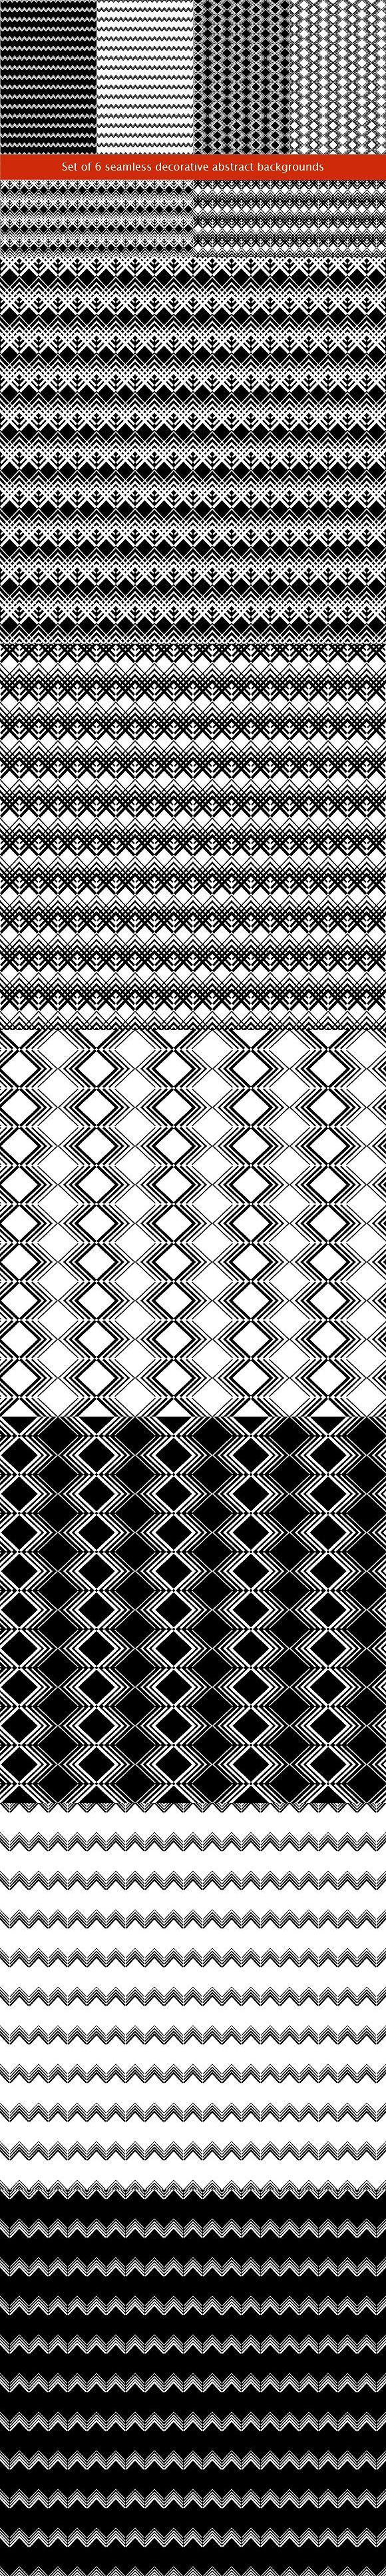 Set of 6 seamless backgrounds. Patterns